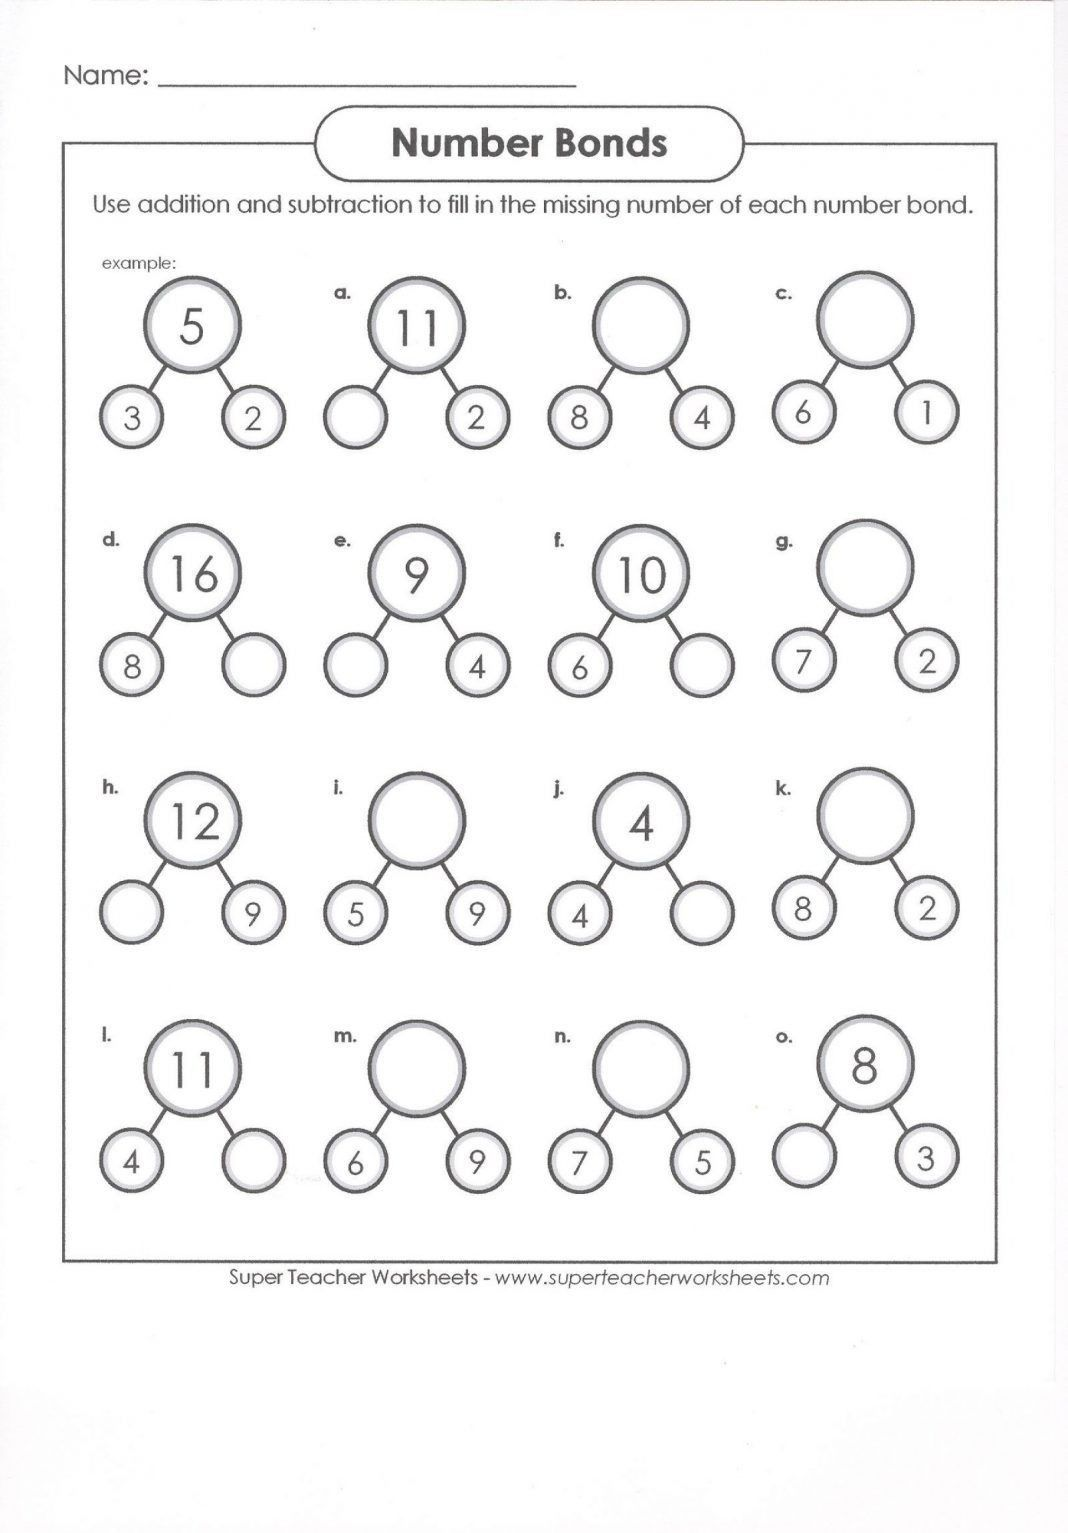 Addition Worksheets For 1st Grade In 2020 Addition Worksheets Worksheets Grade 1